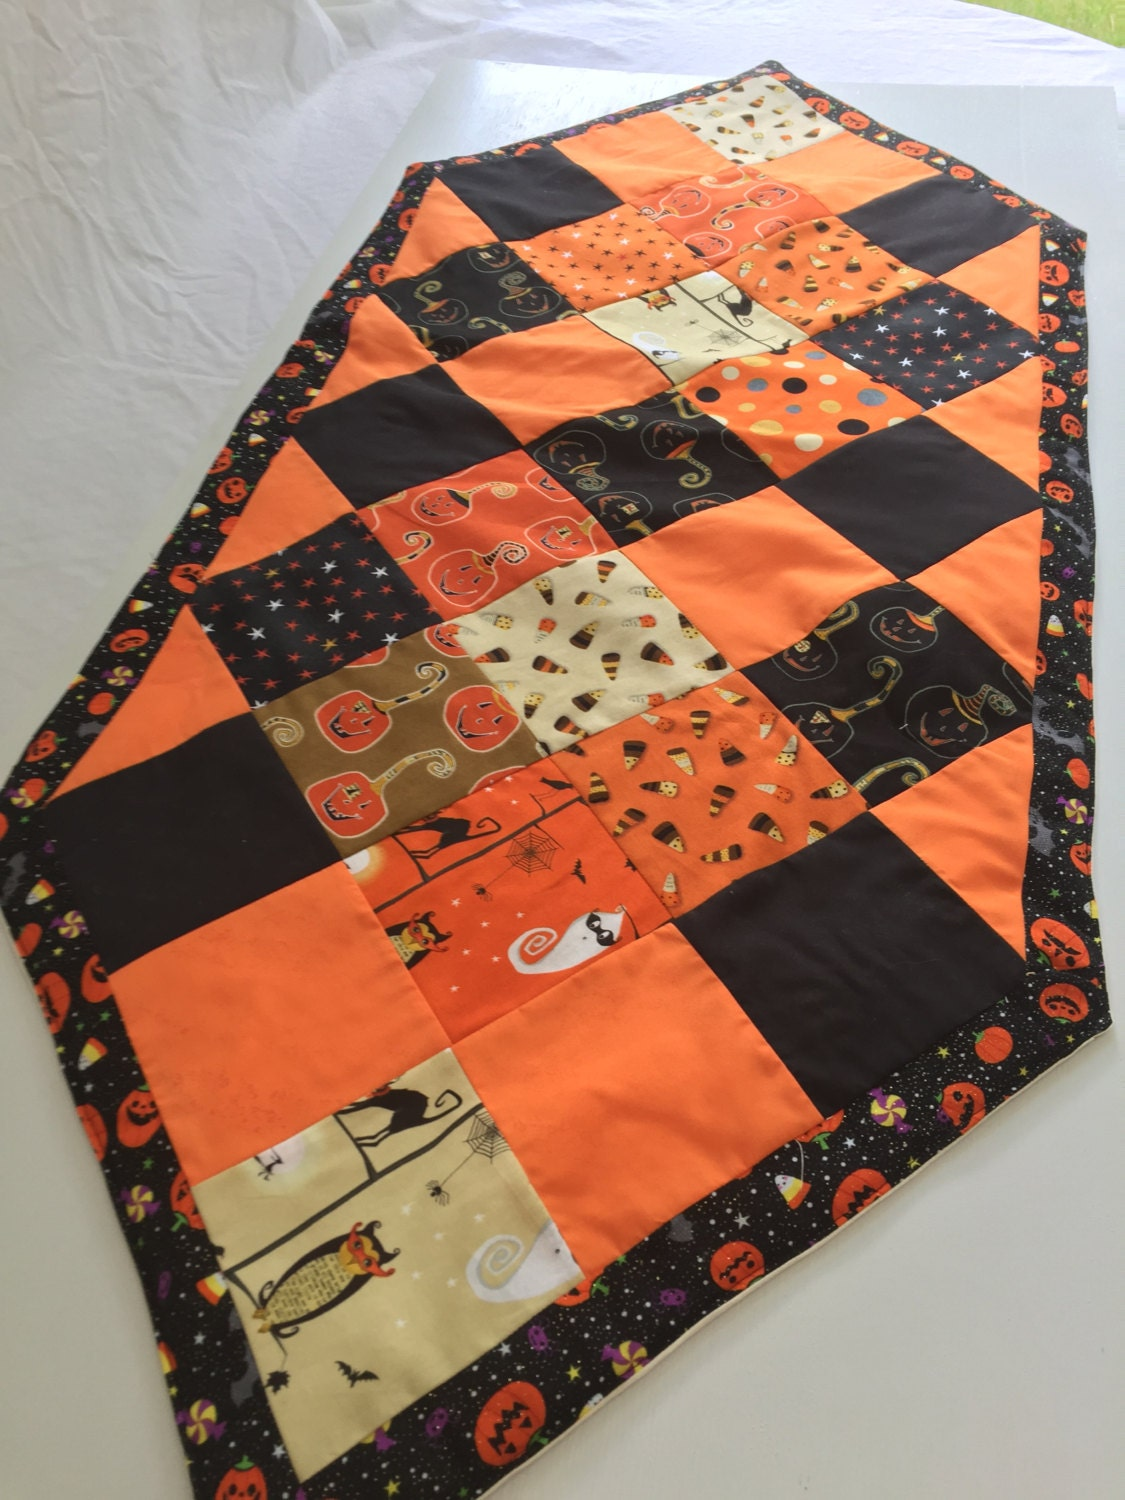 halloween party decor patchwork table runner gallery photo gallery photo gallery photo